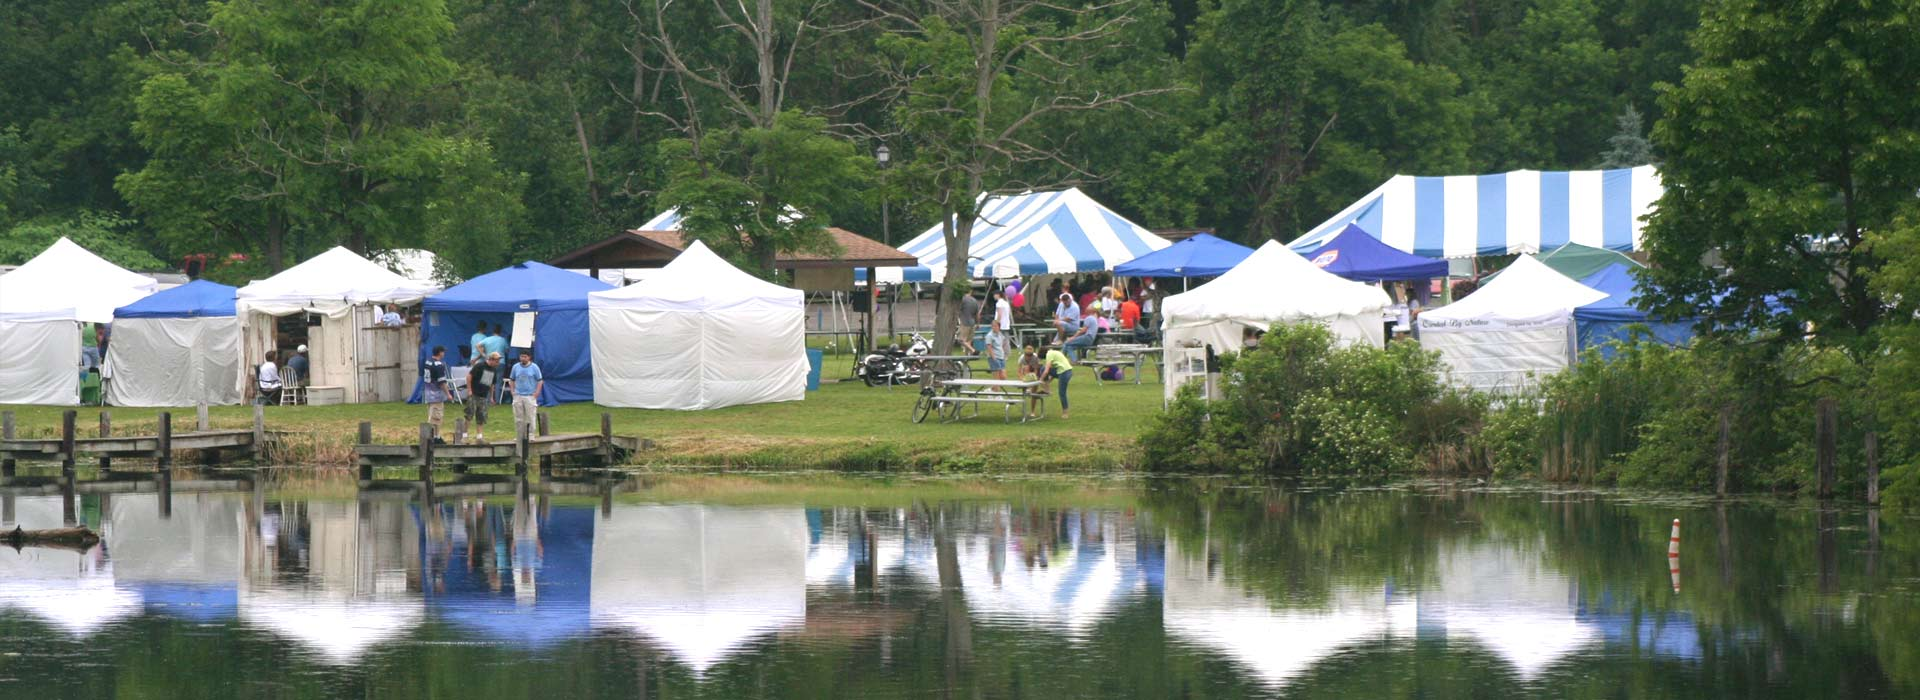 Keuka Arts Festival Tents